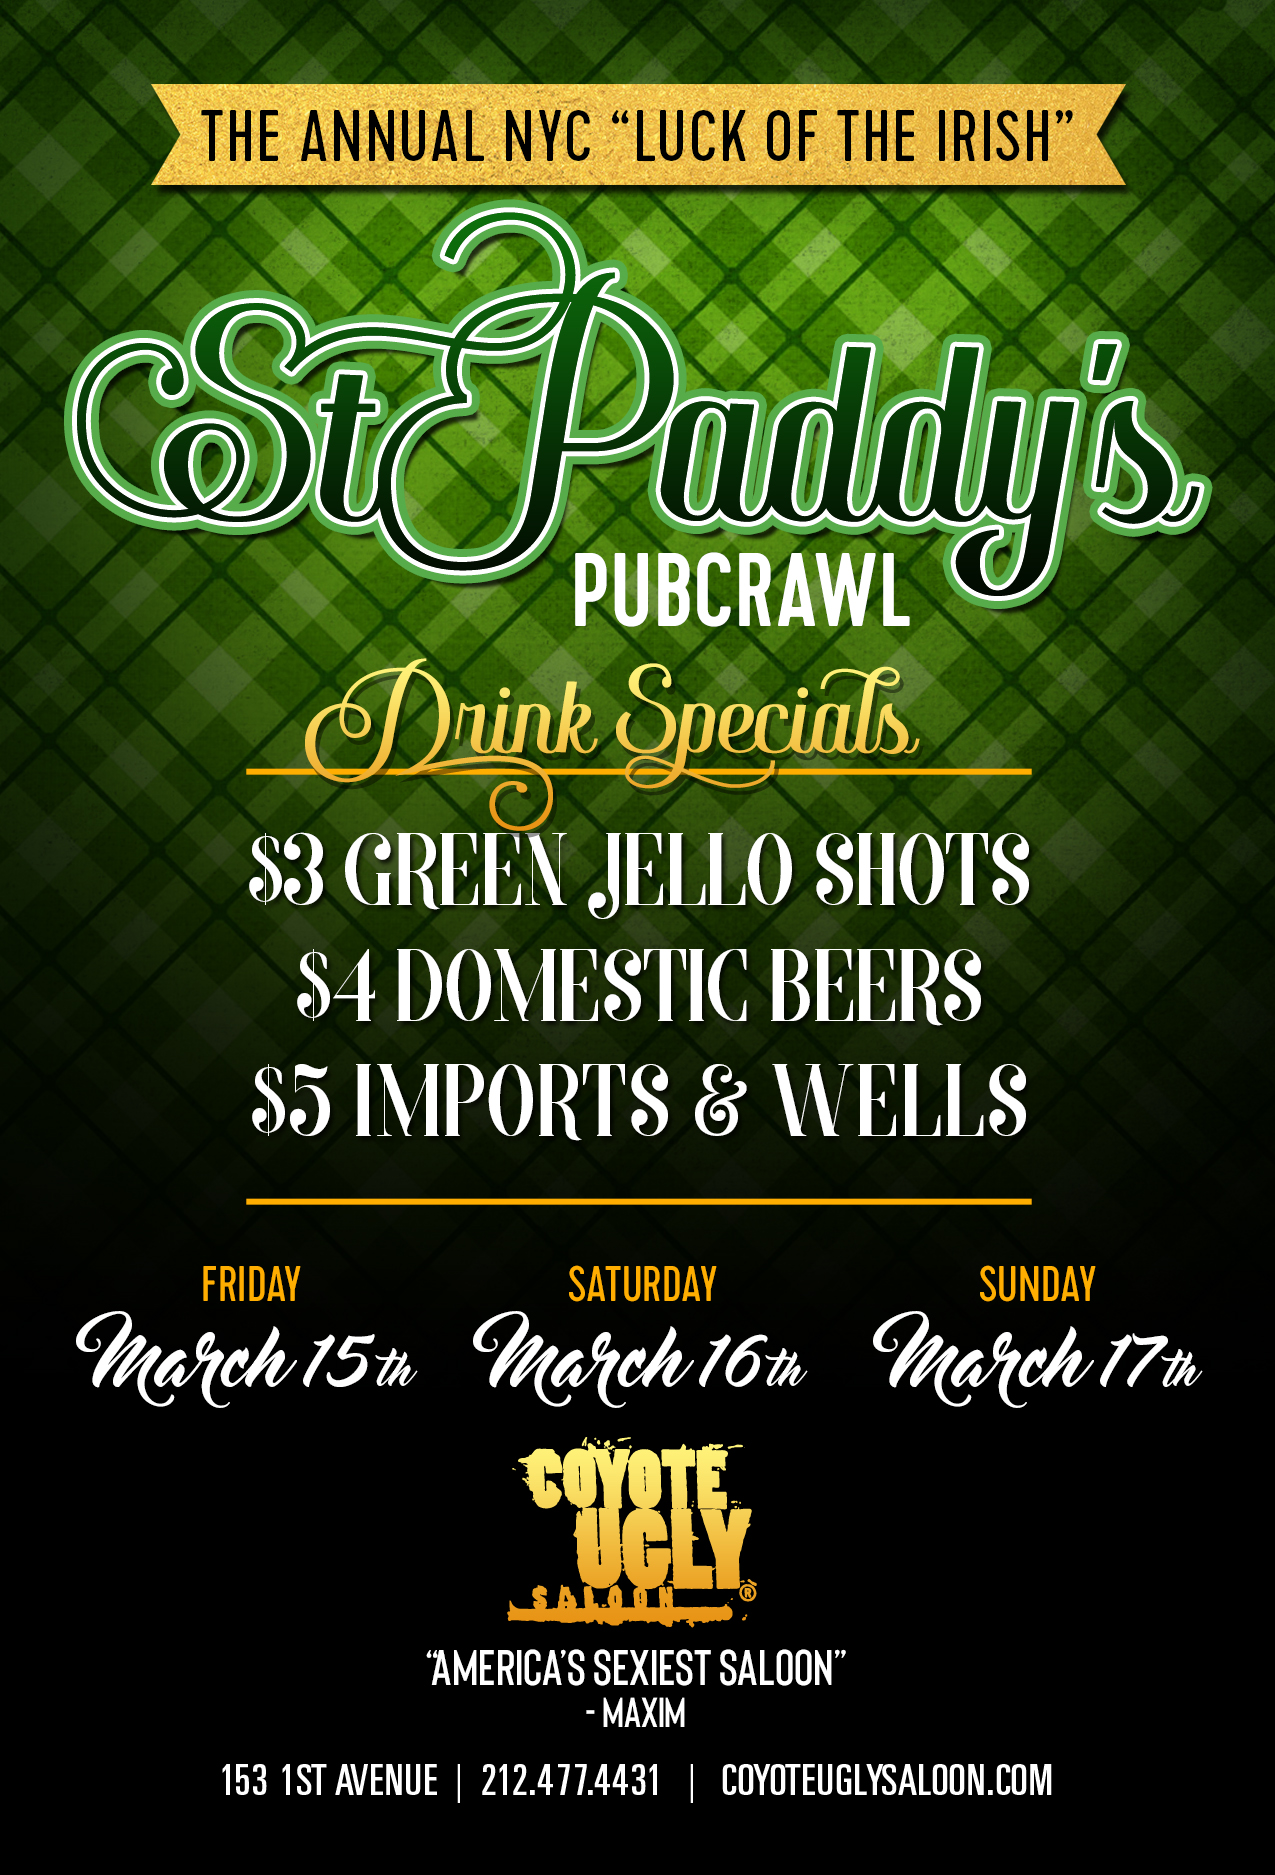 St. Paddy's Pub Crawl in New York City on March 15, 2019 - March 17, 2019